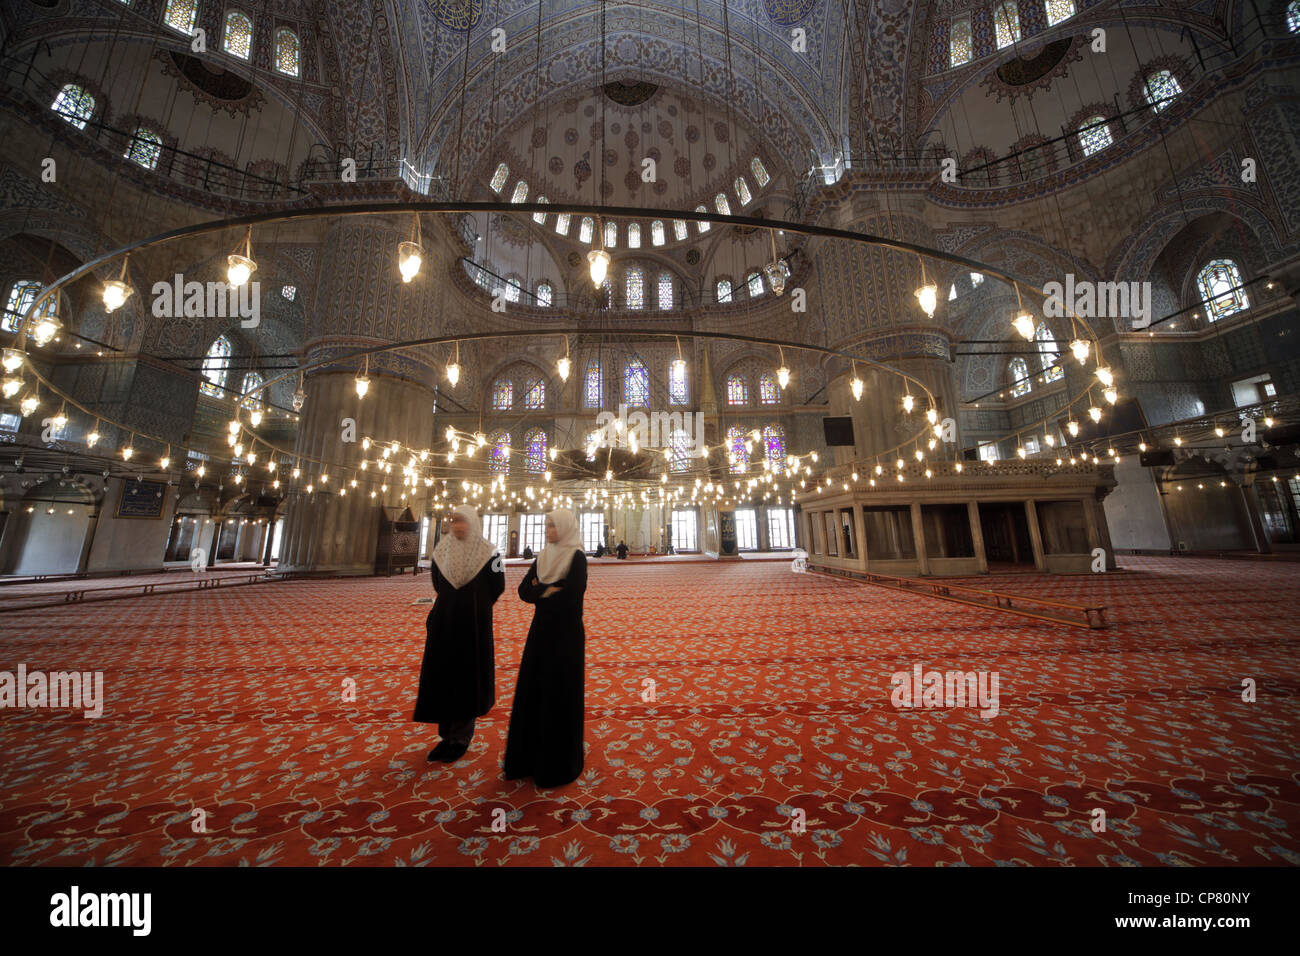 FEMALE MUSLIMS IN BLUE MOSQUE SULTANAHMET ISTANBUL TURKEY 27 March 2012 - Stock Image